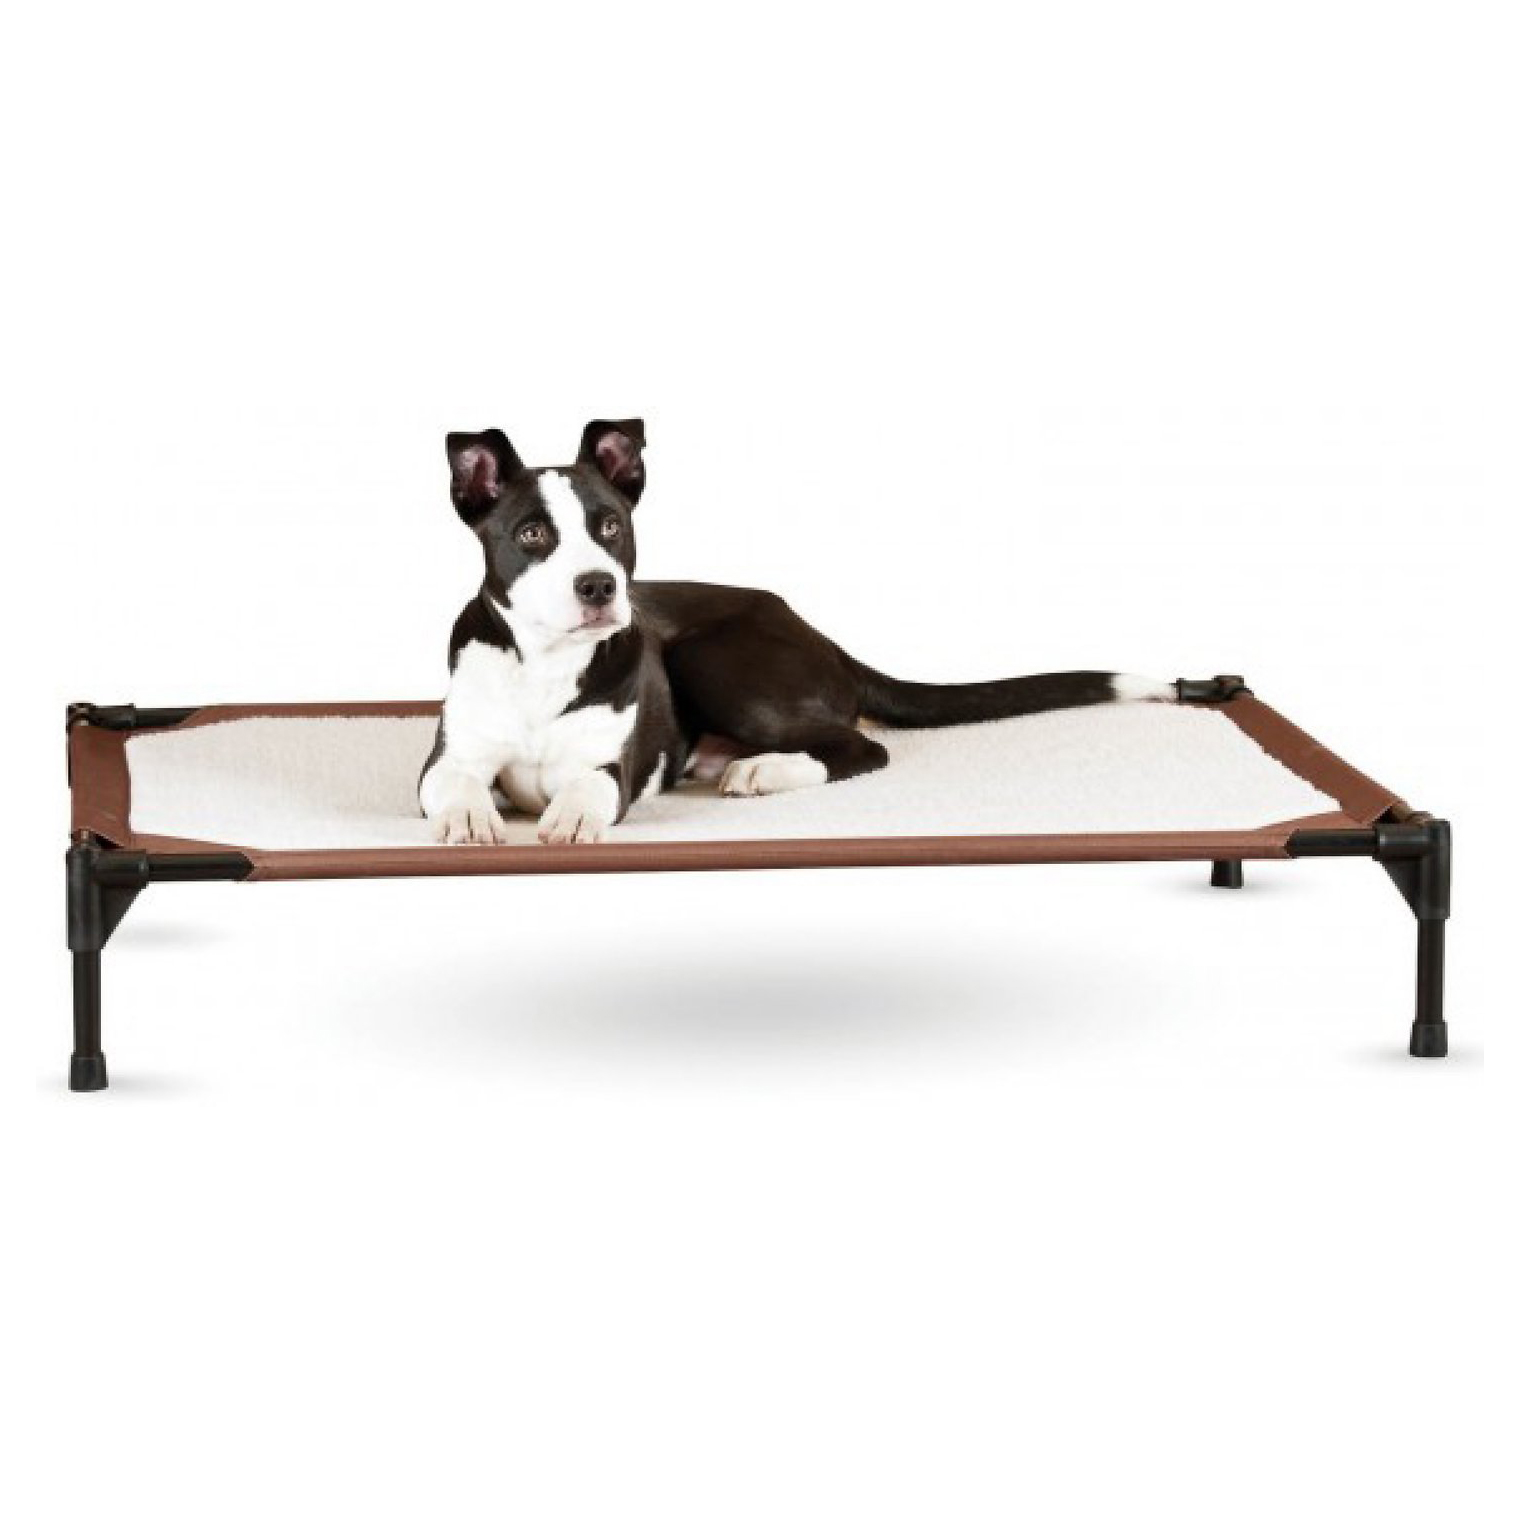 k-and-h-pet-products-self-warming-elevated-dog-bed